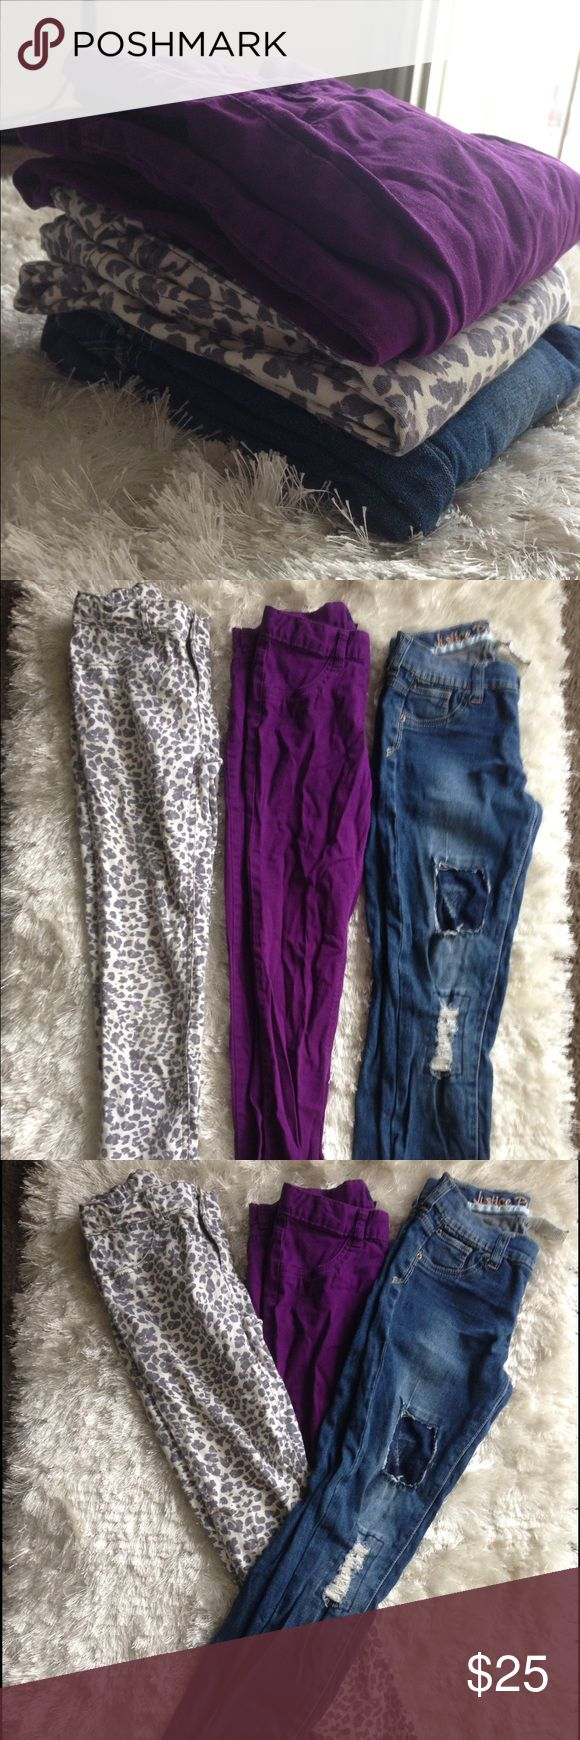 3 Pair of Pants (Girls) Gently worn•Variety bottom lot for girls size 12• (1) CP-Leopard Print Skinny-Gray/White (2)CP Purple Skinny Pant (3) Justice ripped jeans- I brought the pants with the patch as is, with intentions on fixing, my daughter couldn't fit them so I was stuck with them... a simple needle and thread job. (shown in photo) SOLD AS LOT• WILL NOT SELL SEPARATE• FREE MYSTERY ITEM WITH PURCHASE. Children's Place Bottoms Jeans